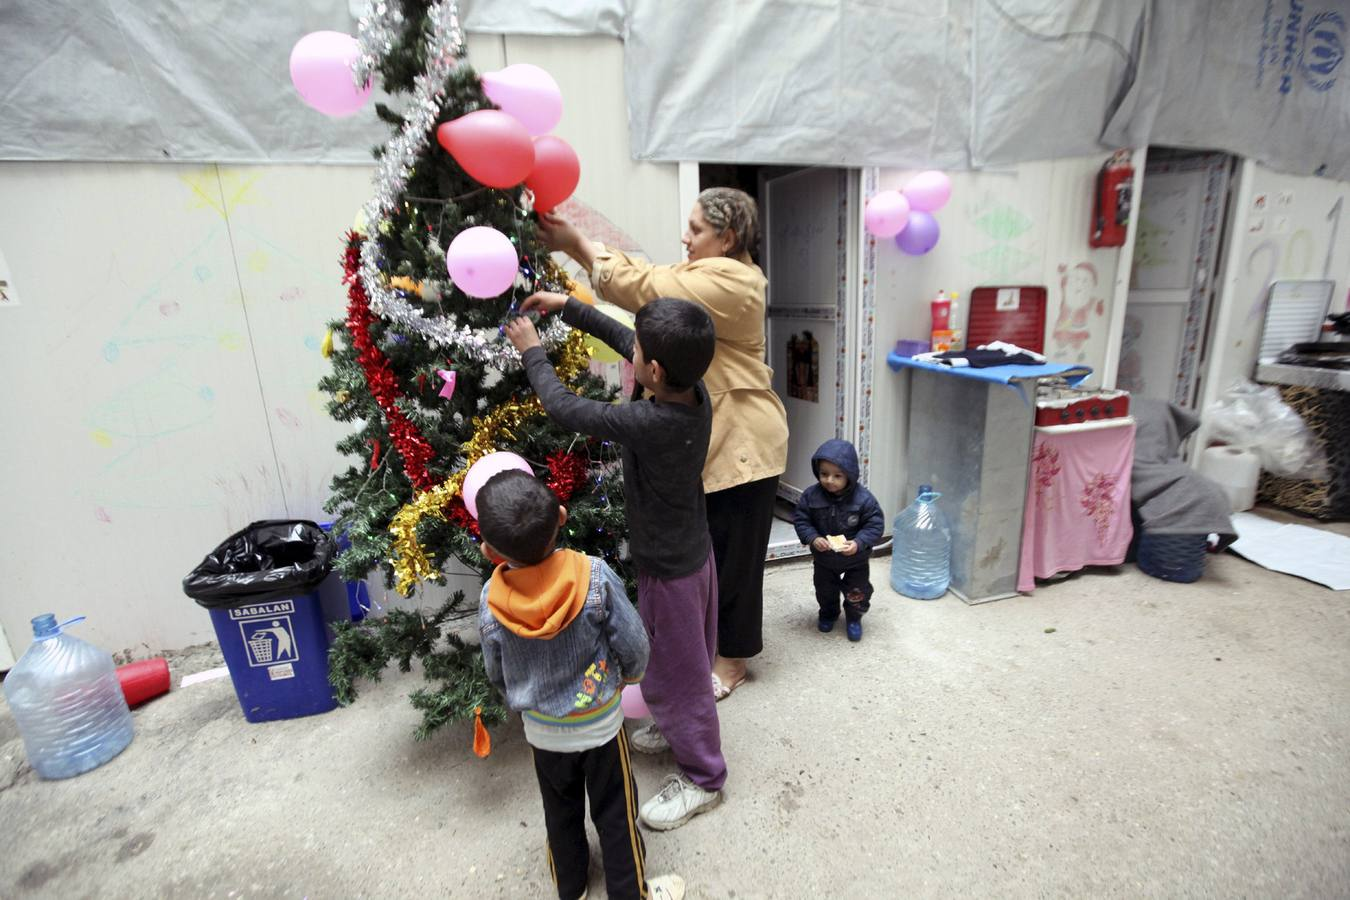 Displaced Iraqi Christian children who fled from Islamic State militants in Mosul, gather around a Christmas tree at a mall still under construction, used as a refugee camp in Arbil December 24, 2014. REUTERS/Azad Lashkari (IRAQ - Tags: SOCIETY CIVIL UNREST)